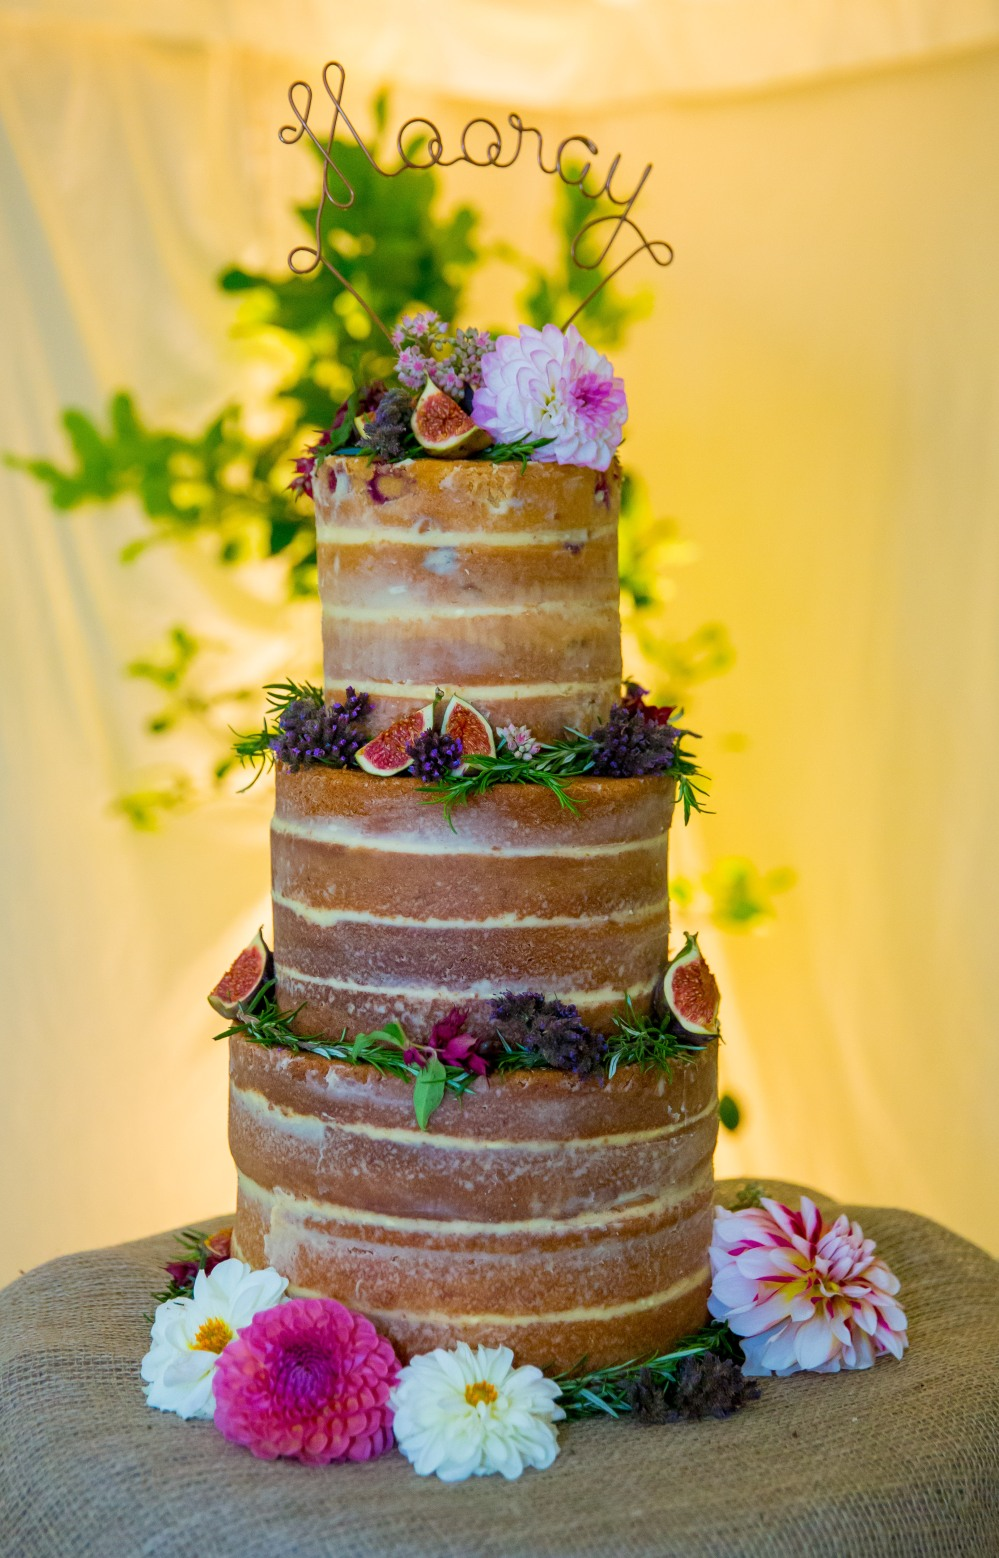 The Wedding Cake was made by Bridesmaid Sarah co-founder of Doggart and Squash